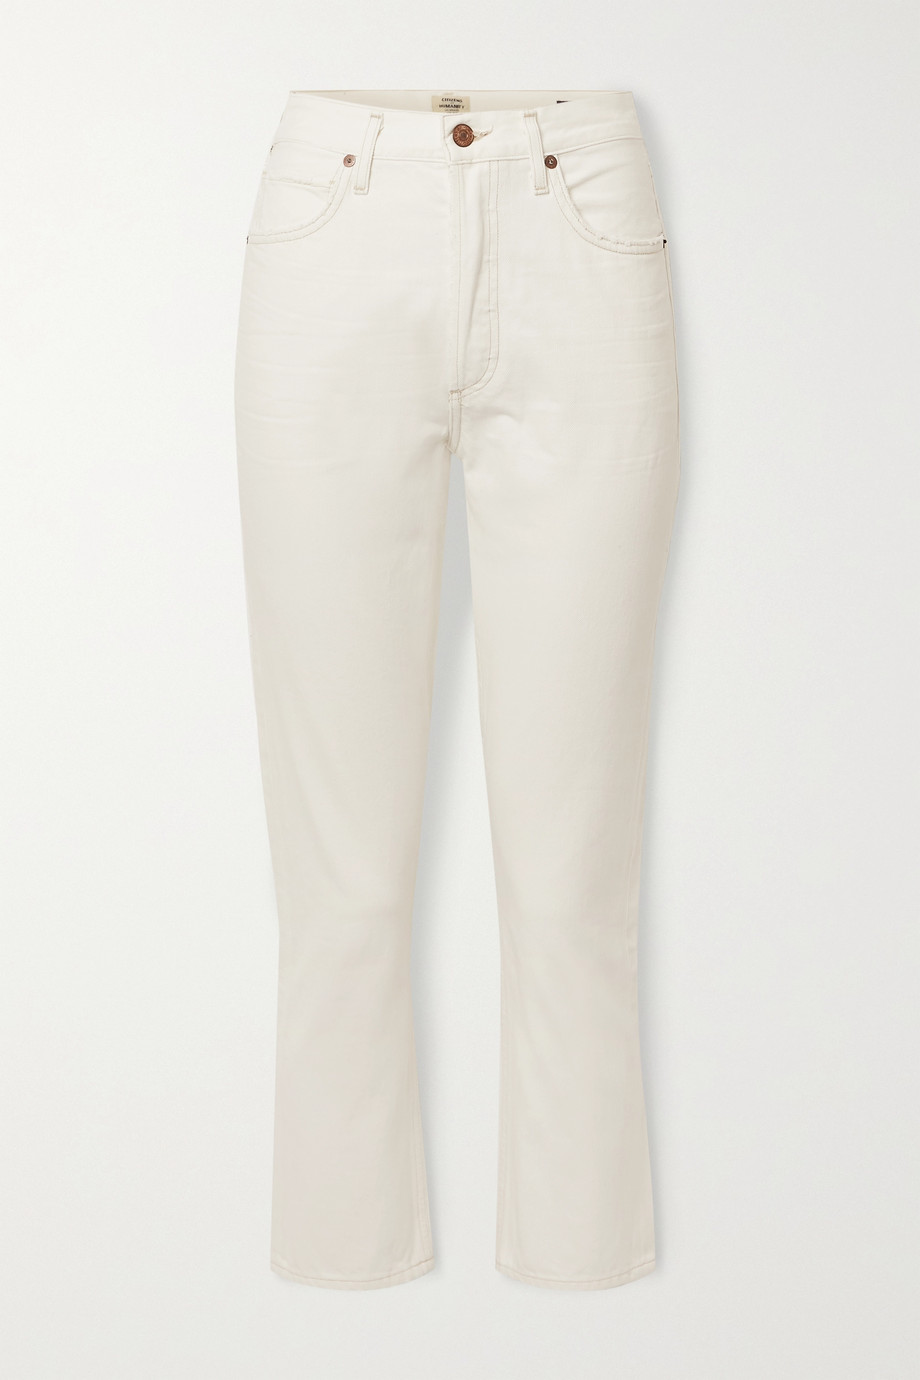 Citizens of Humanity + NET SUSTAIN Charlotte cropped high-rise straight-leg jeans